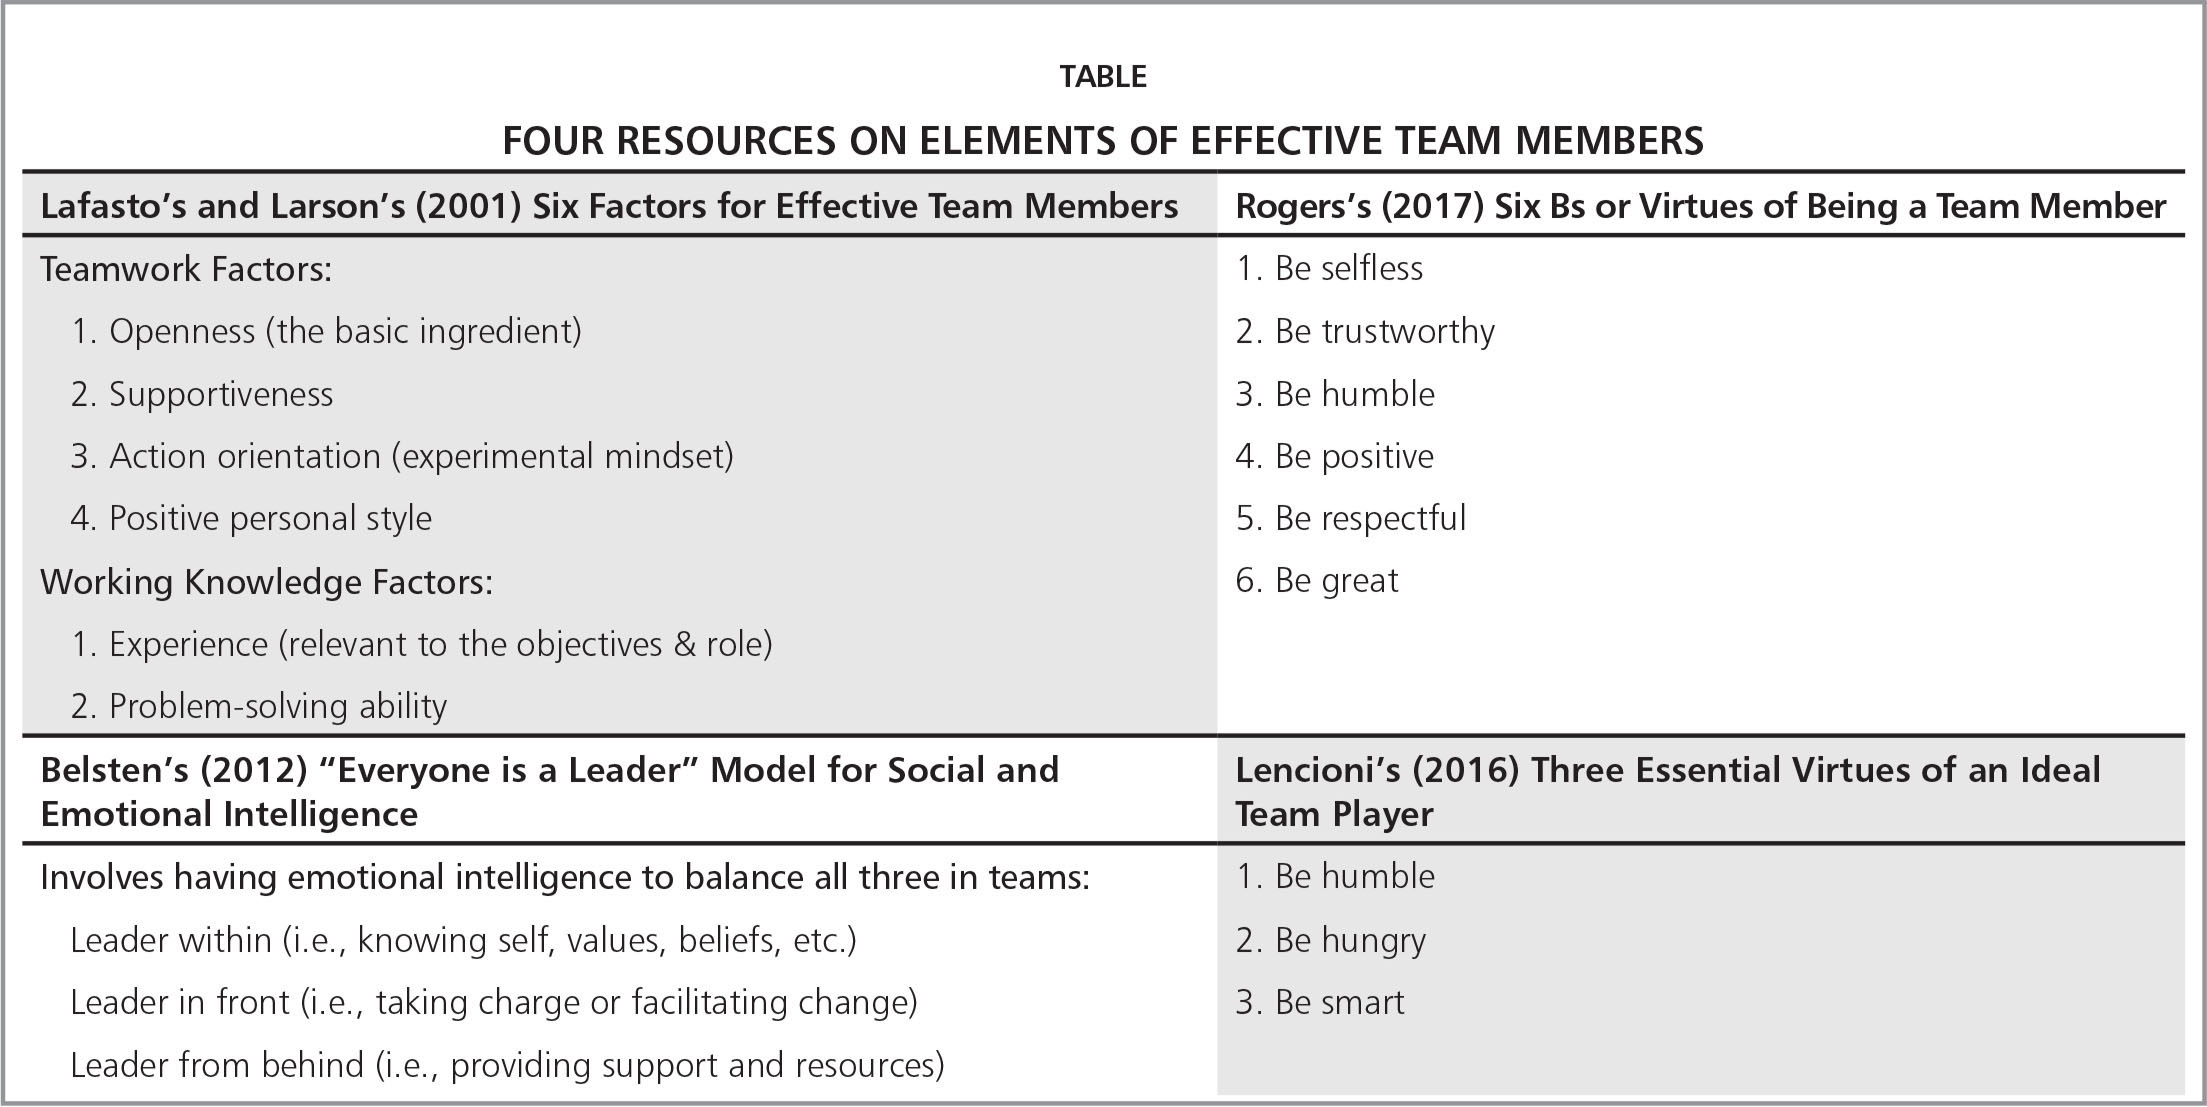 Four Resources on Elements of Effective Team Members